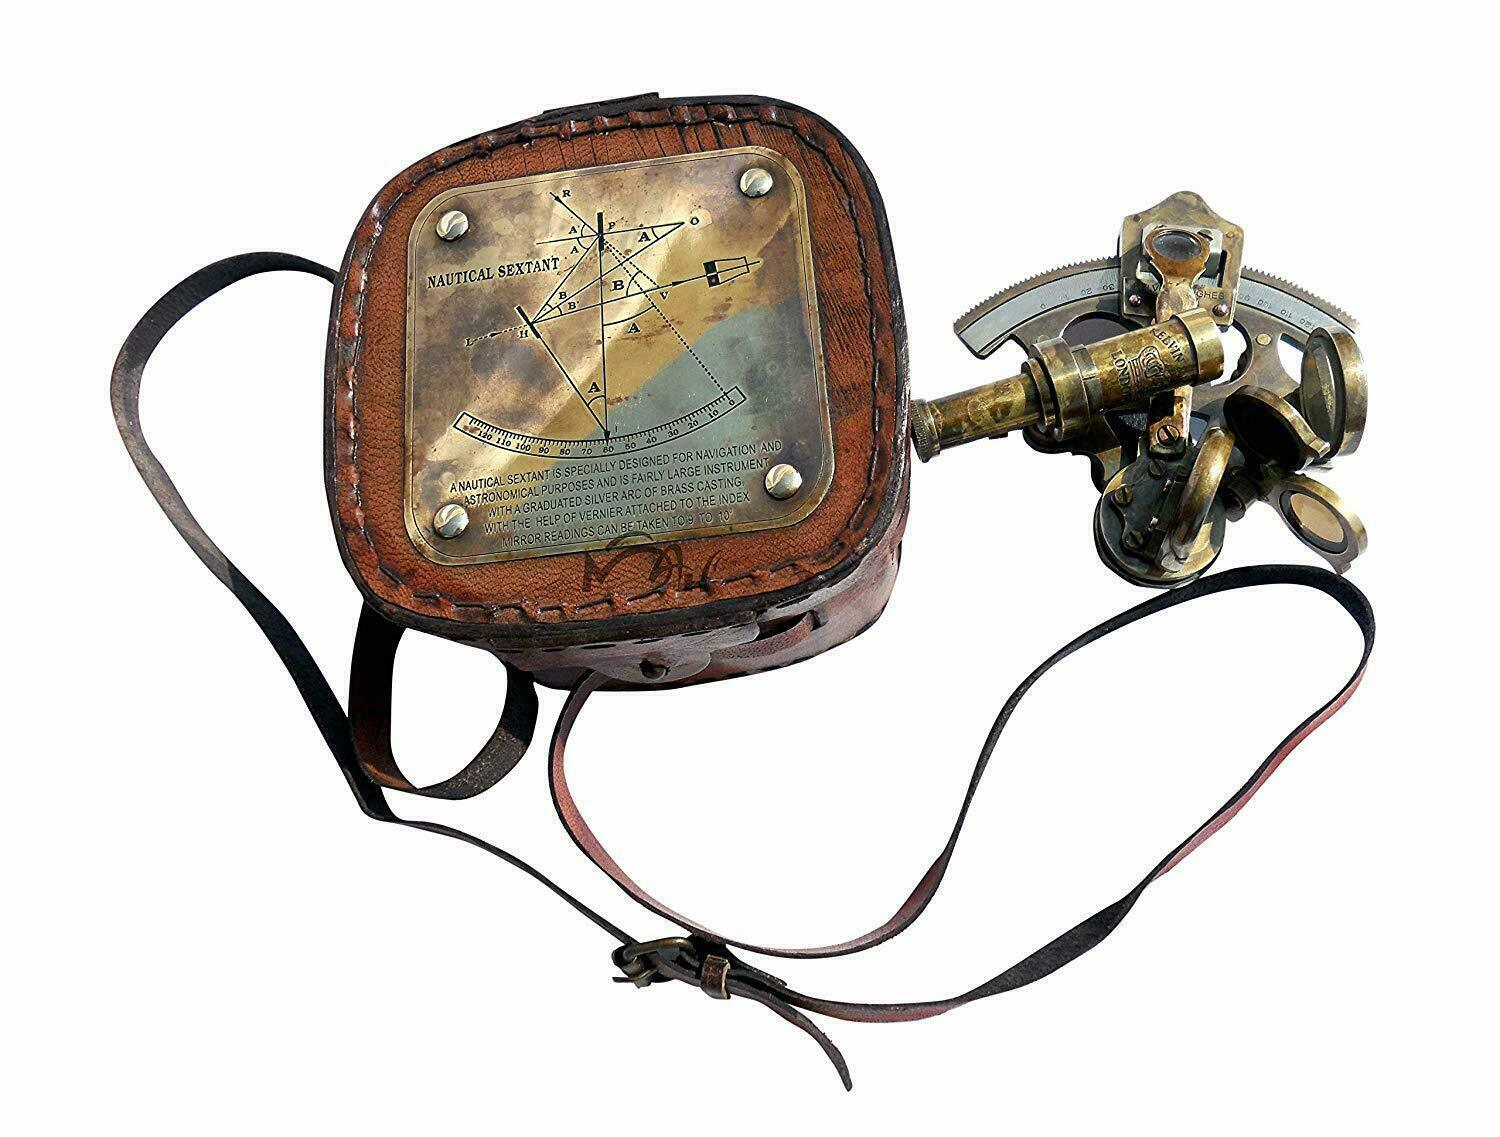 Antique Brass Nautical Sextant With Leather Box- Ship Vintage Pocket Sextant - $29.00